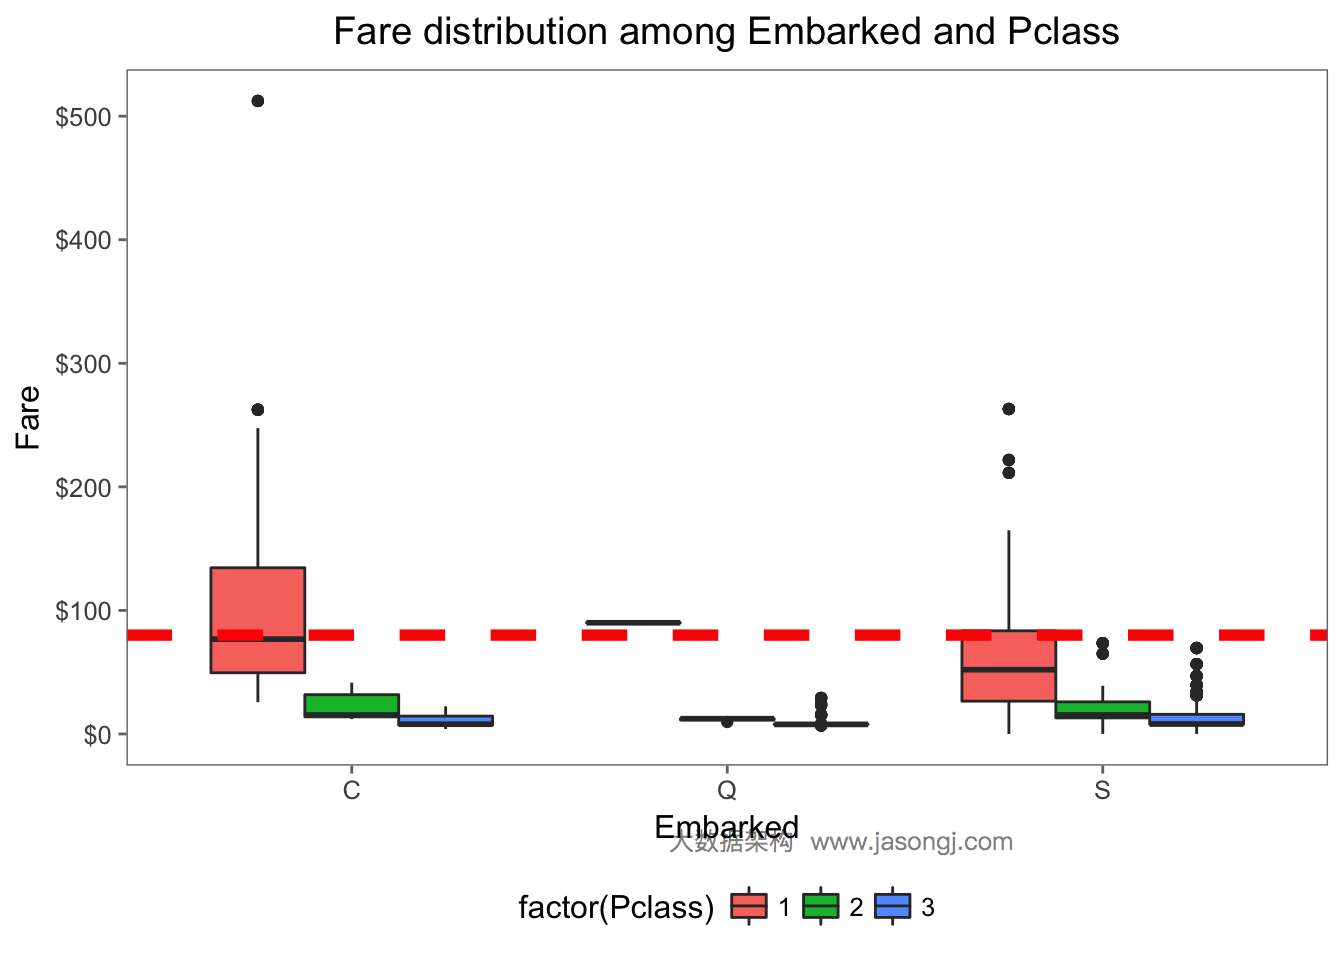 Fare median value of each Embarked and Pclass